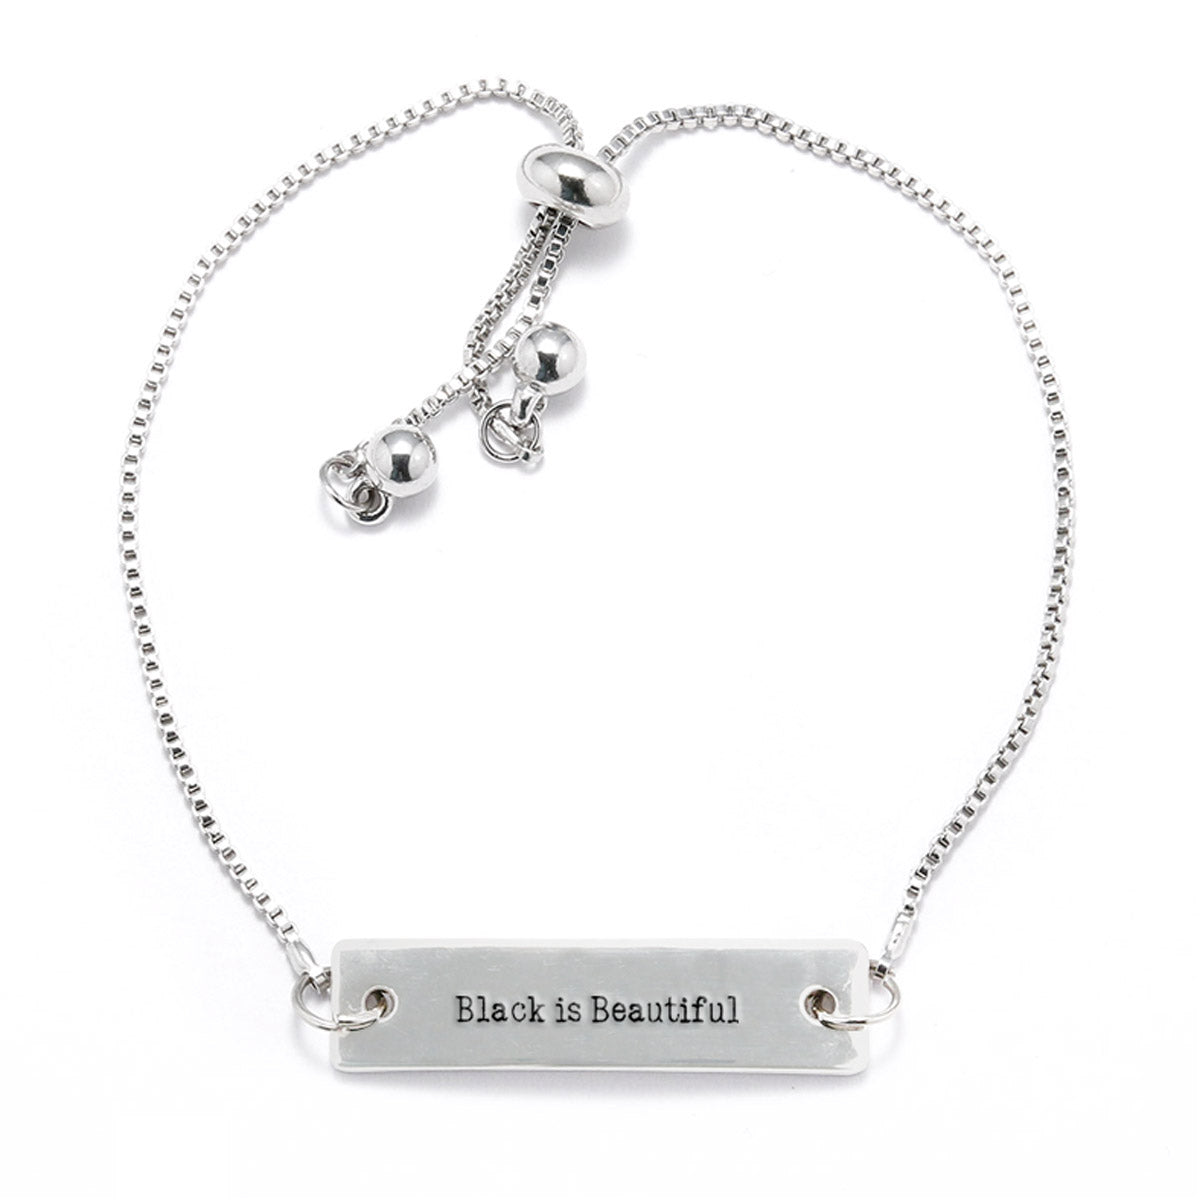 Black is Beautiful Silver Bar Adjustable Bracelet - pipercleo.com